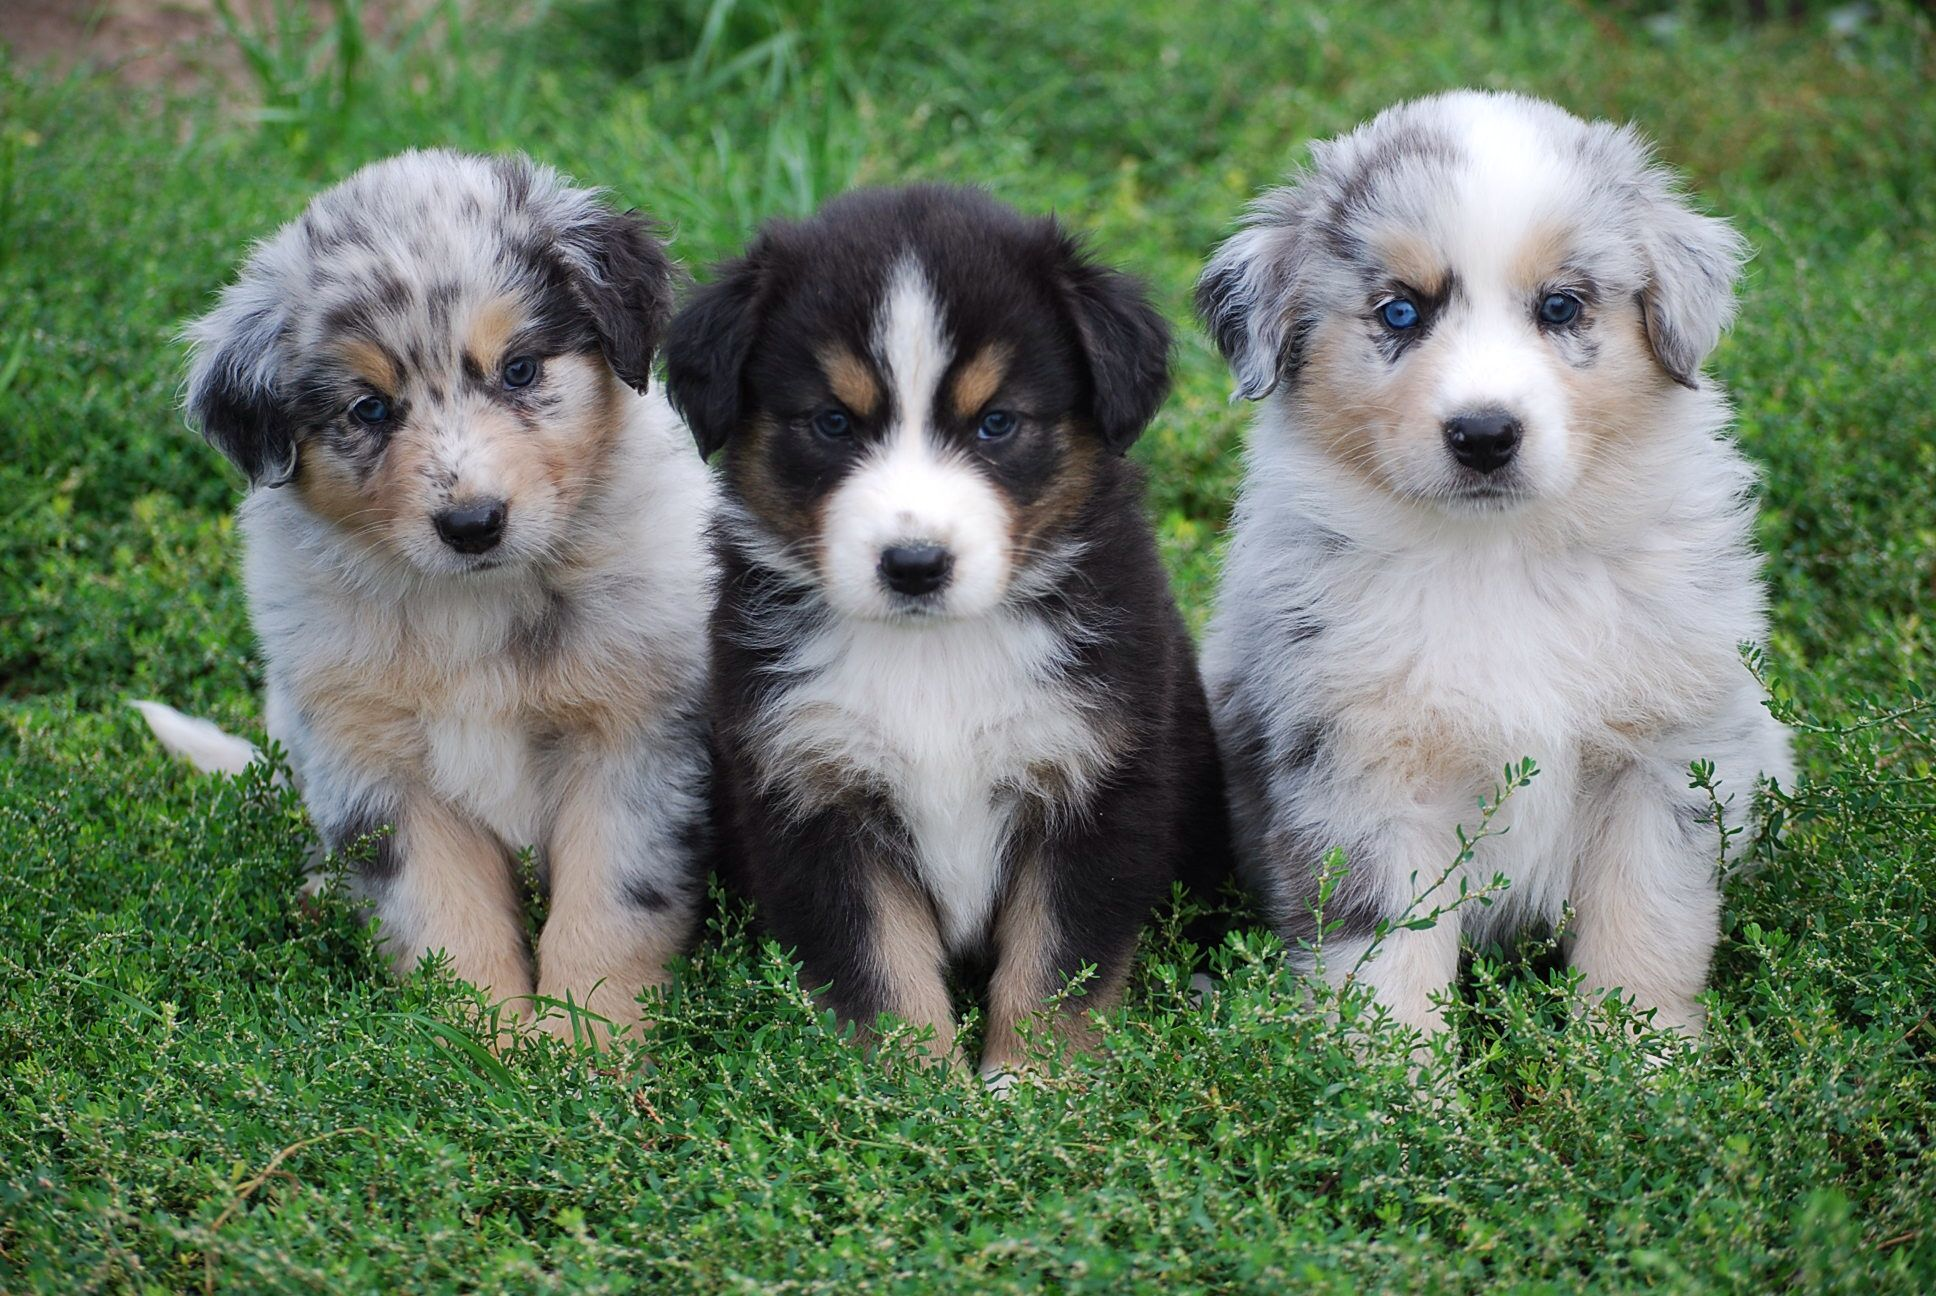 Australian Shepherd Pups Cute Baby Animals Dogs And Puppies Australian Shepherd Puppies